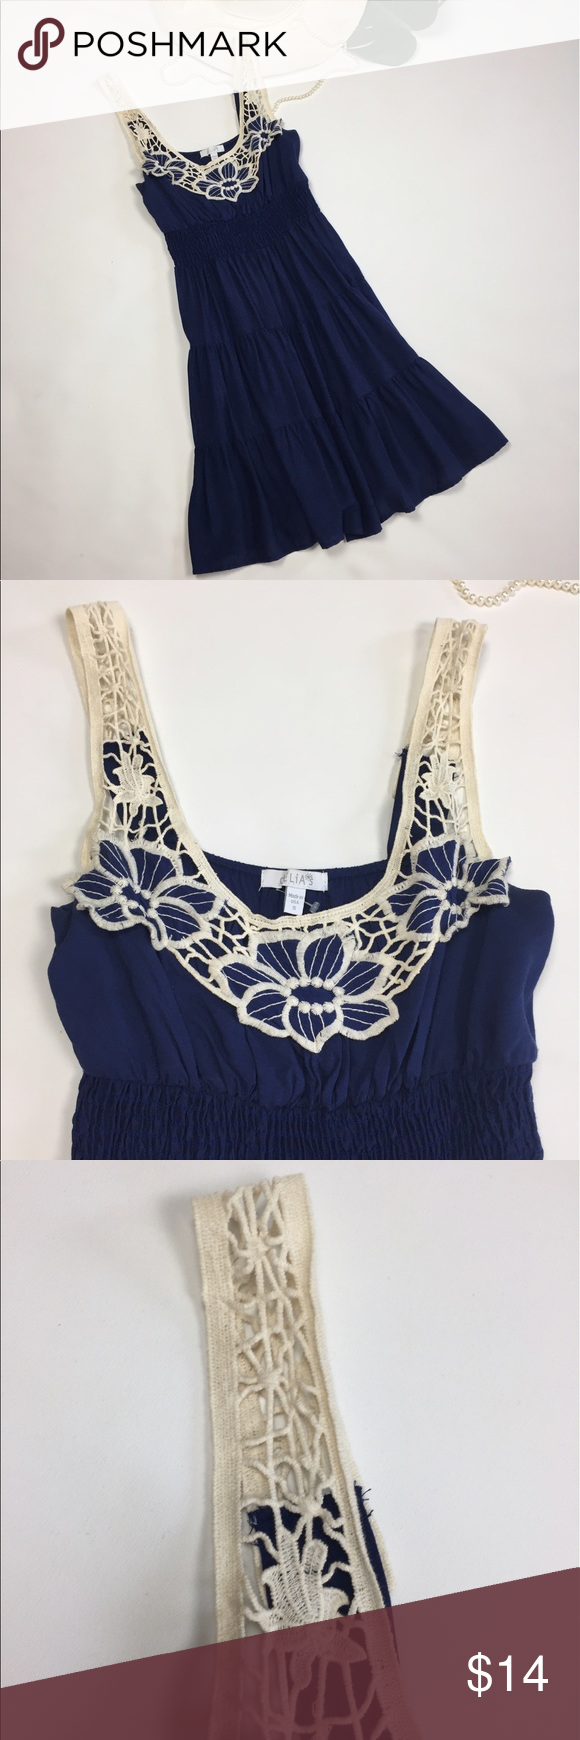 Delias's 🎁 Navy blue dress with lace straps SZ S Delias's 🎁 Navy blue dress with lace straps SZ S  summer dress boho bohemian cream lace floral accent on the front with cream canvas lacing straps pintucking A-line skirt very flattering soft material Dresses Mini